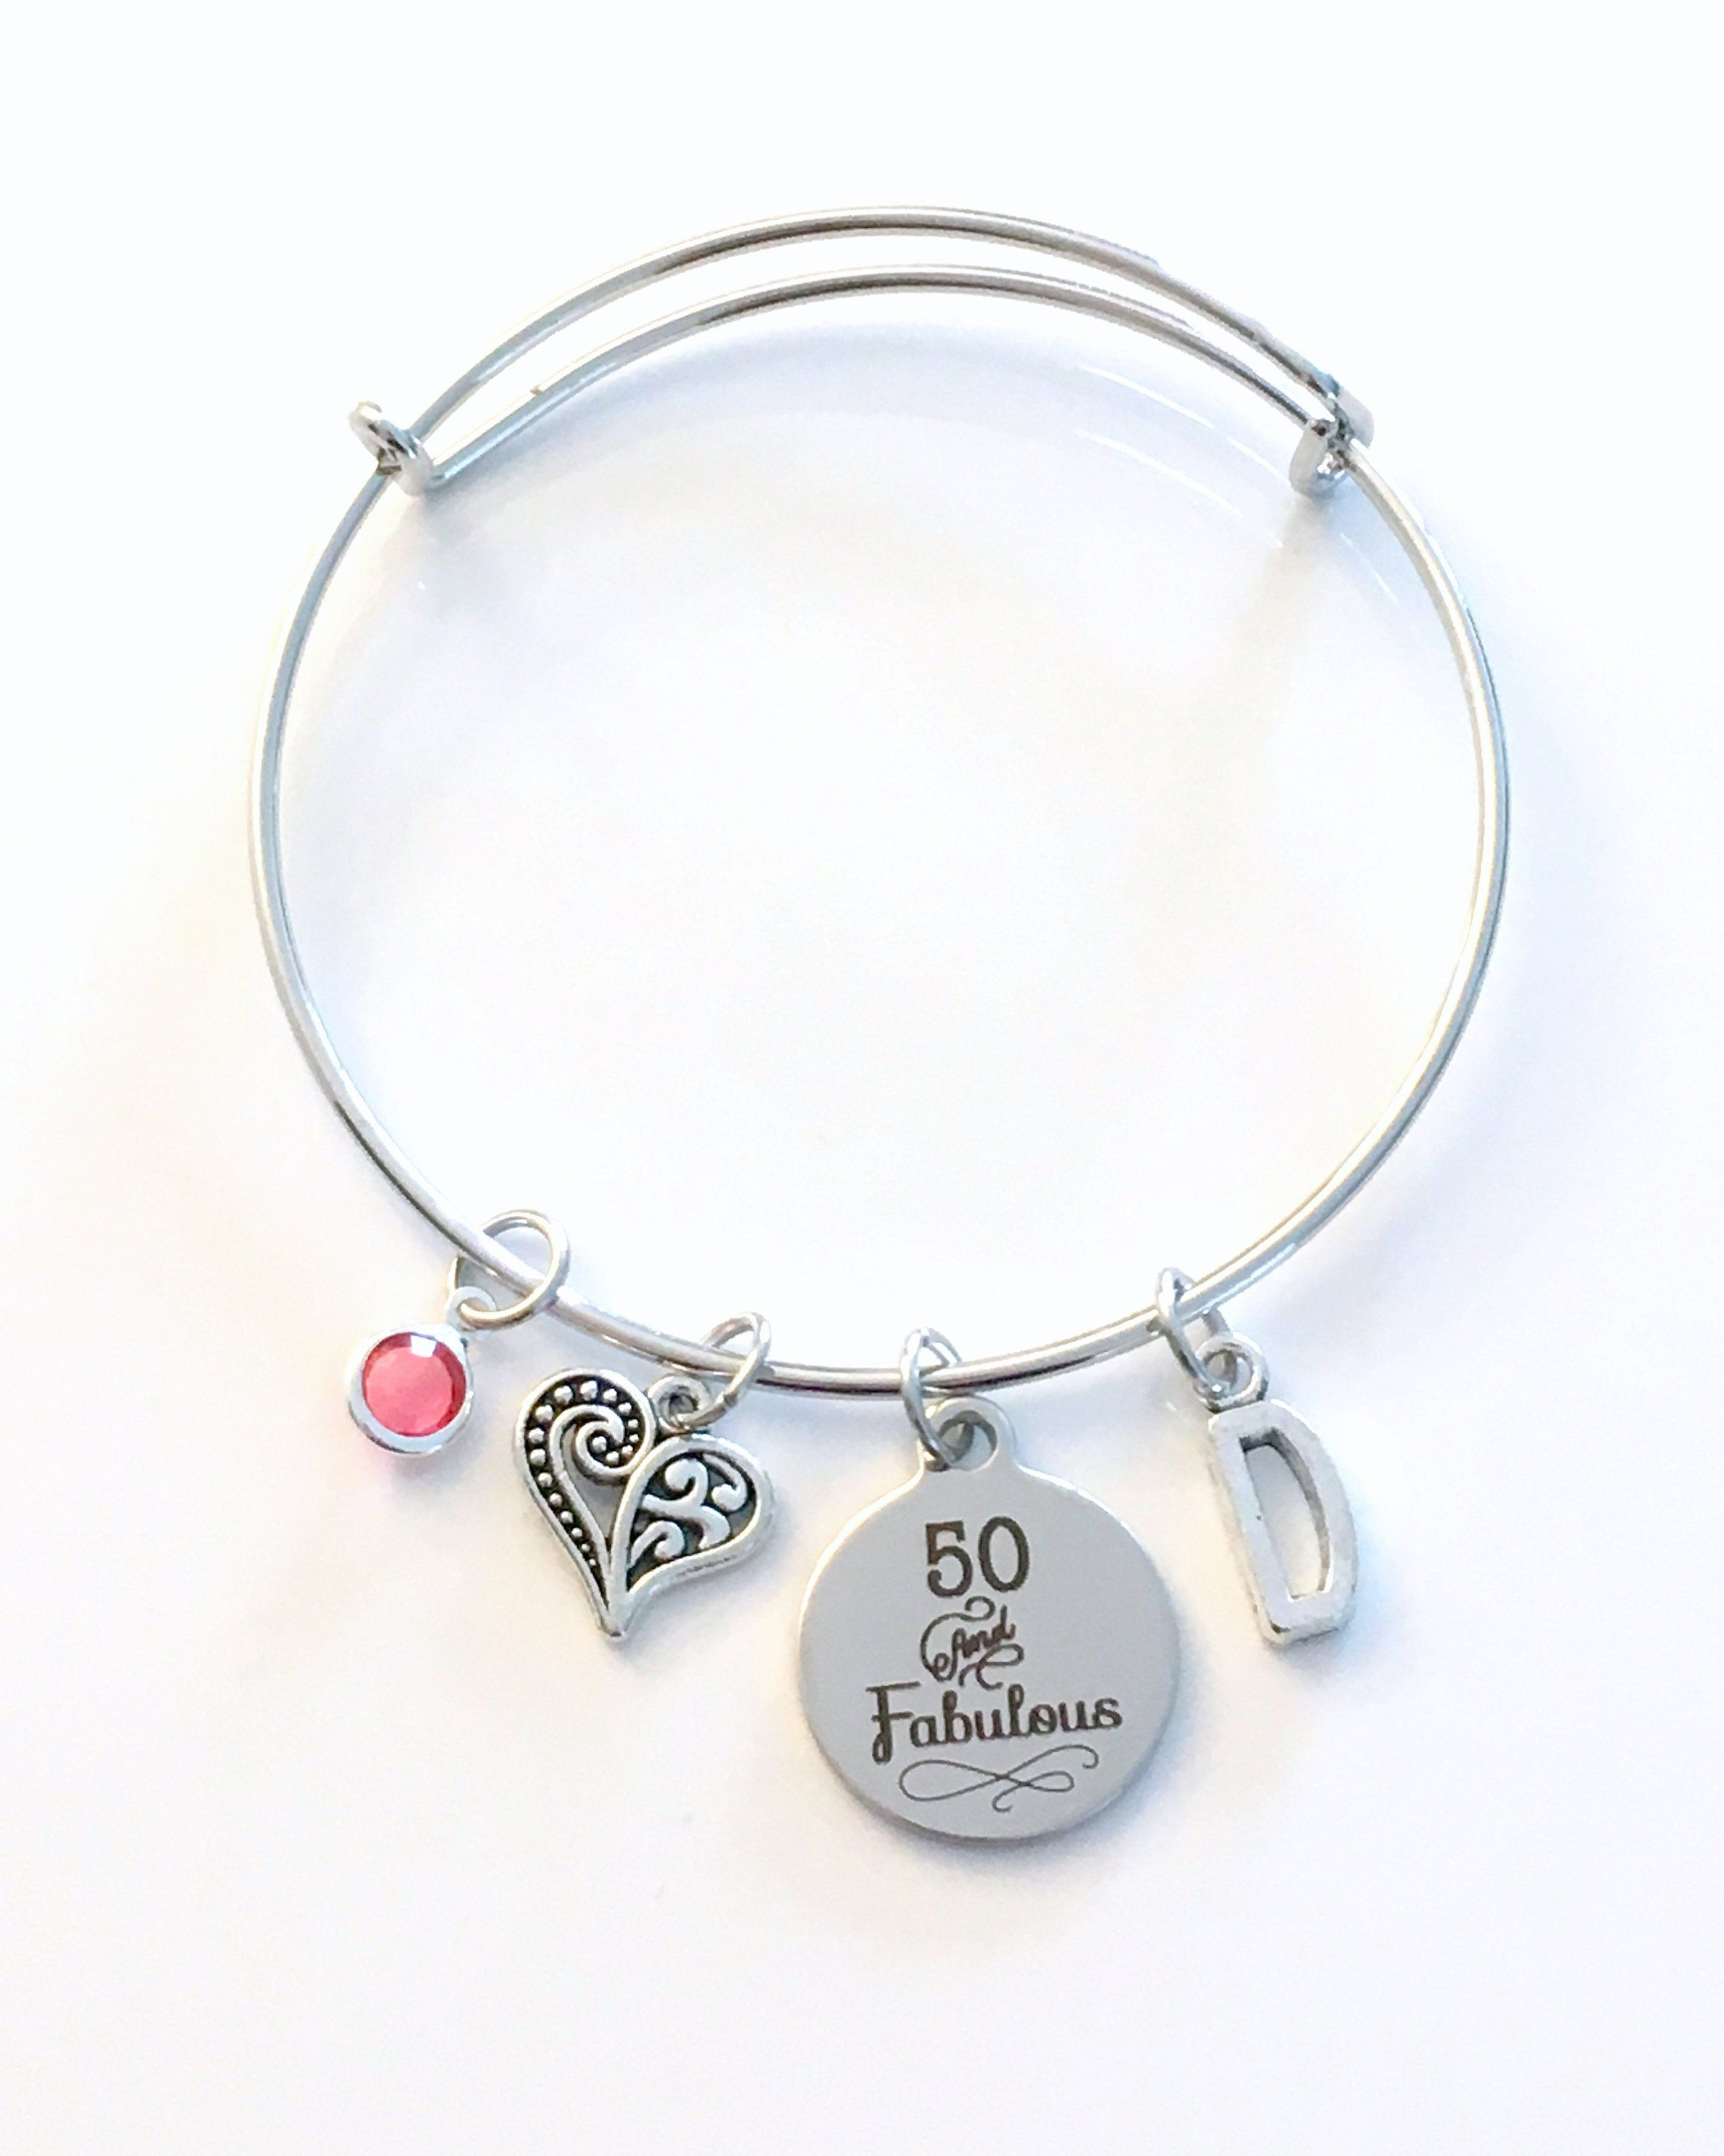 50th Birthday Gift For Women Jewelry Mom Bracelet Fifty And Fabulous Charm Bangle Silver 50 Present Mum Mother Woman Her Best Friends By